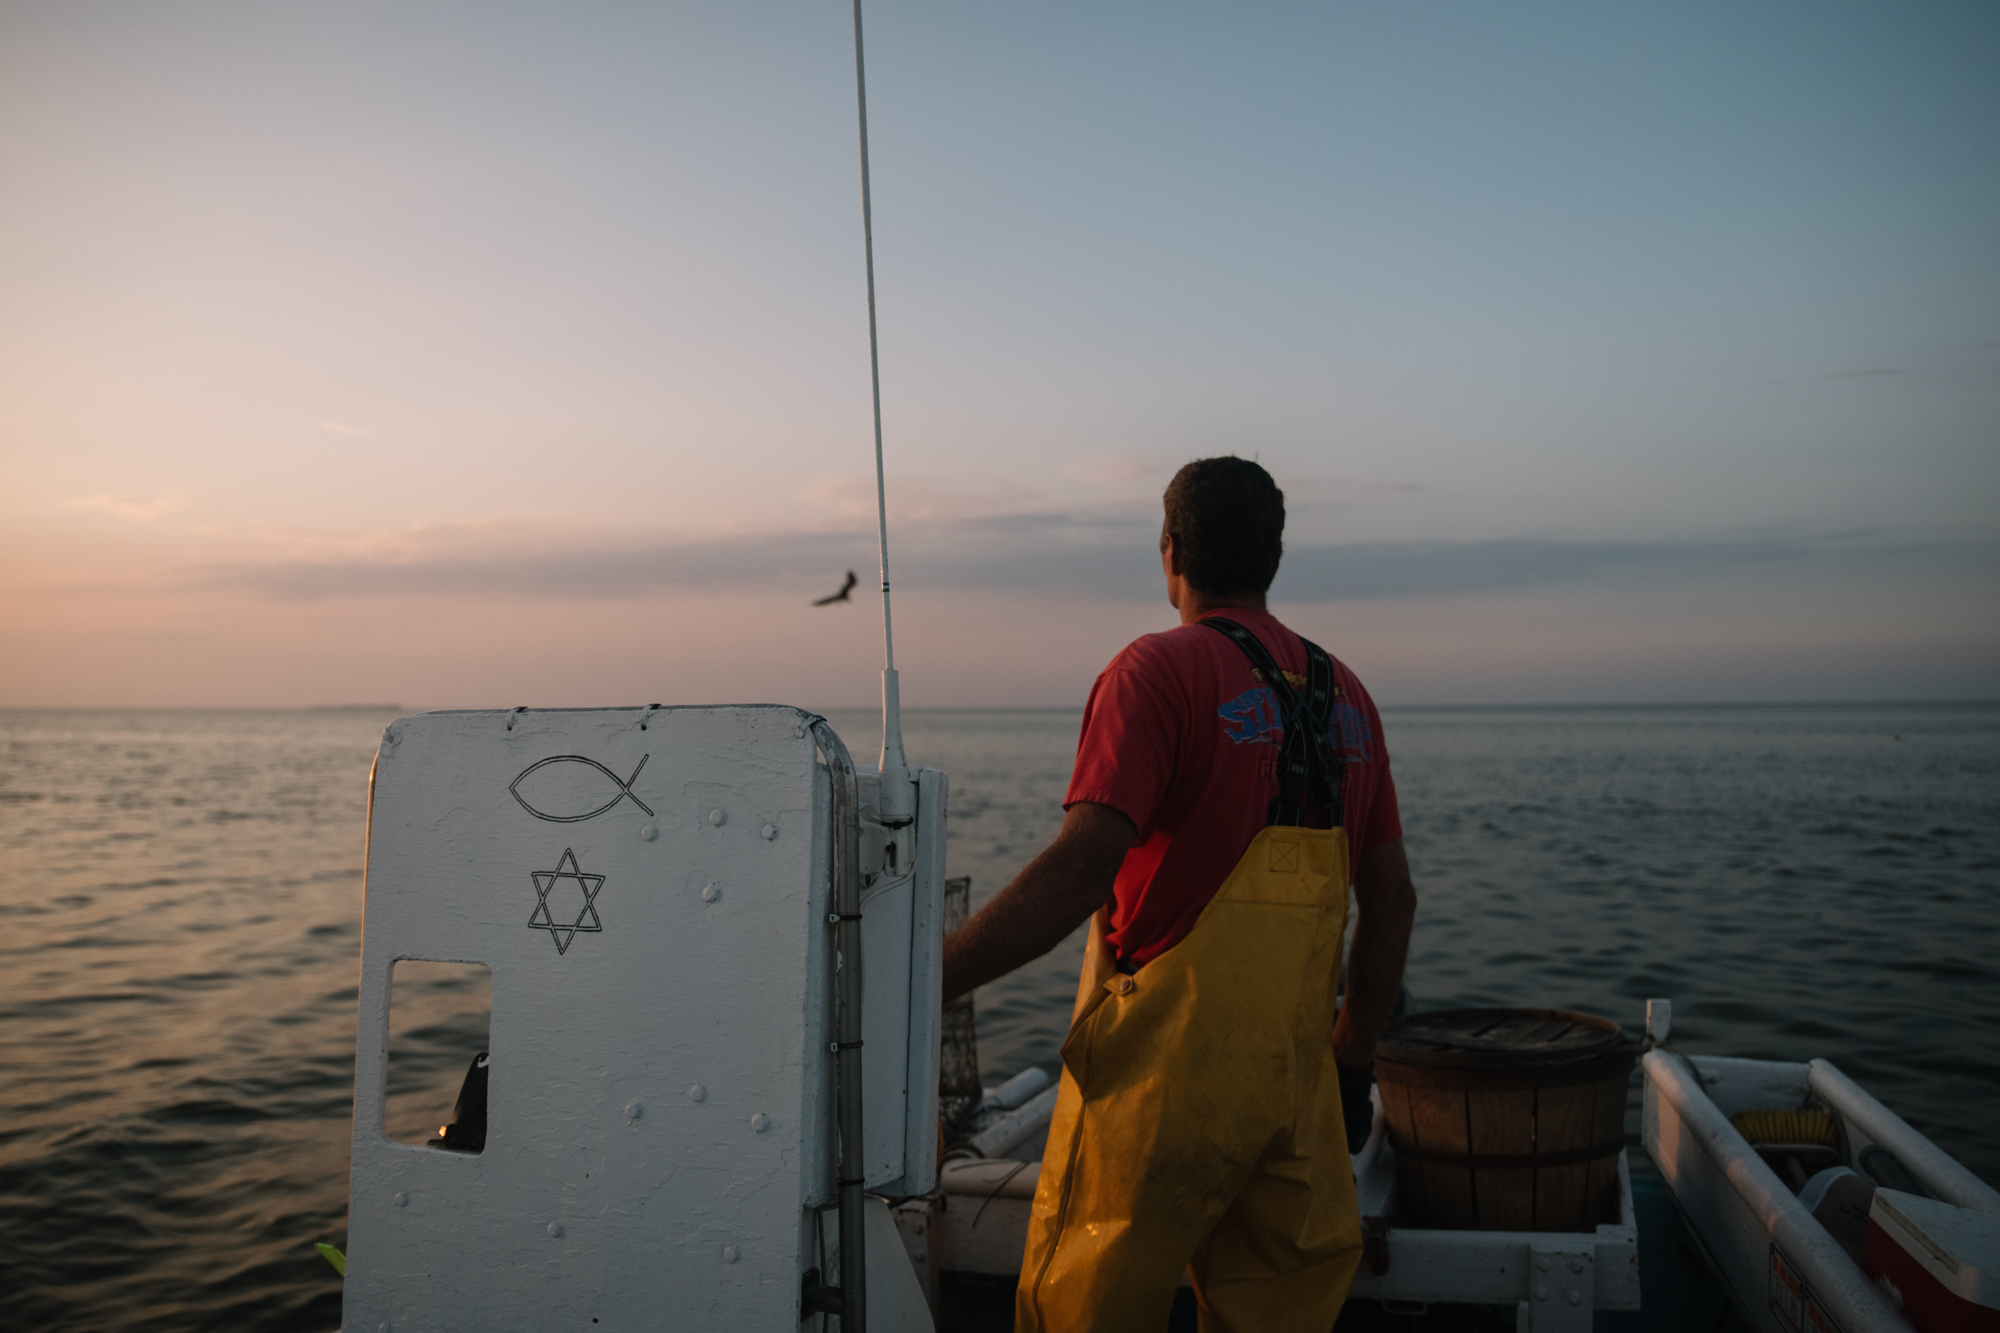 Ooker tangier Island feature documentary